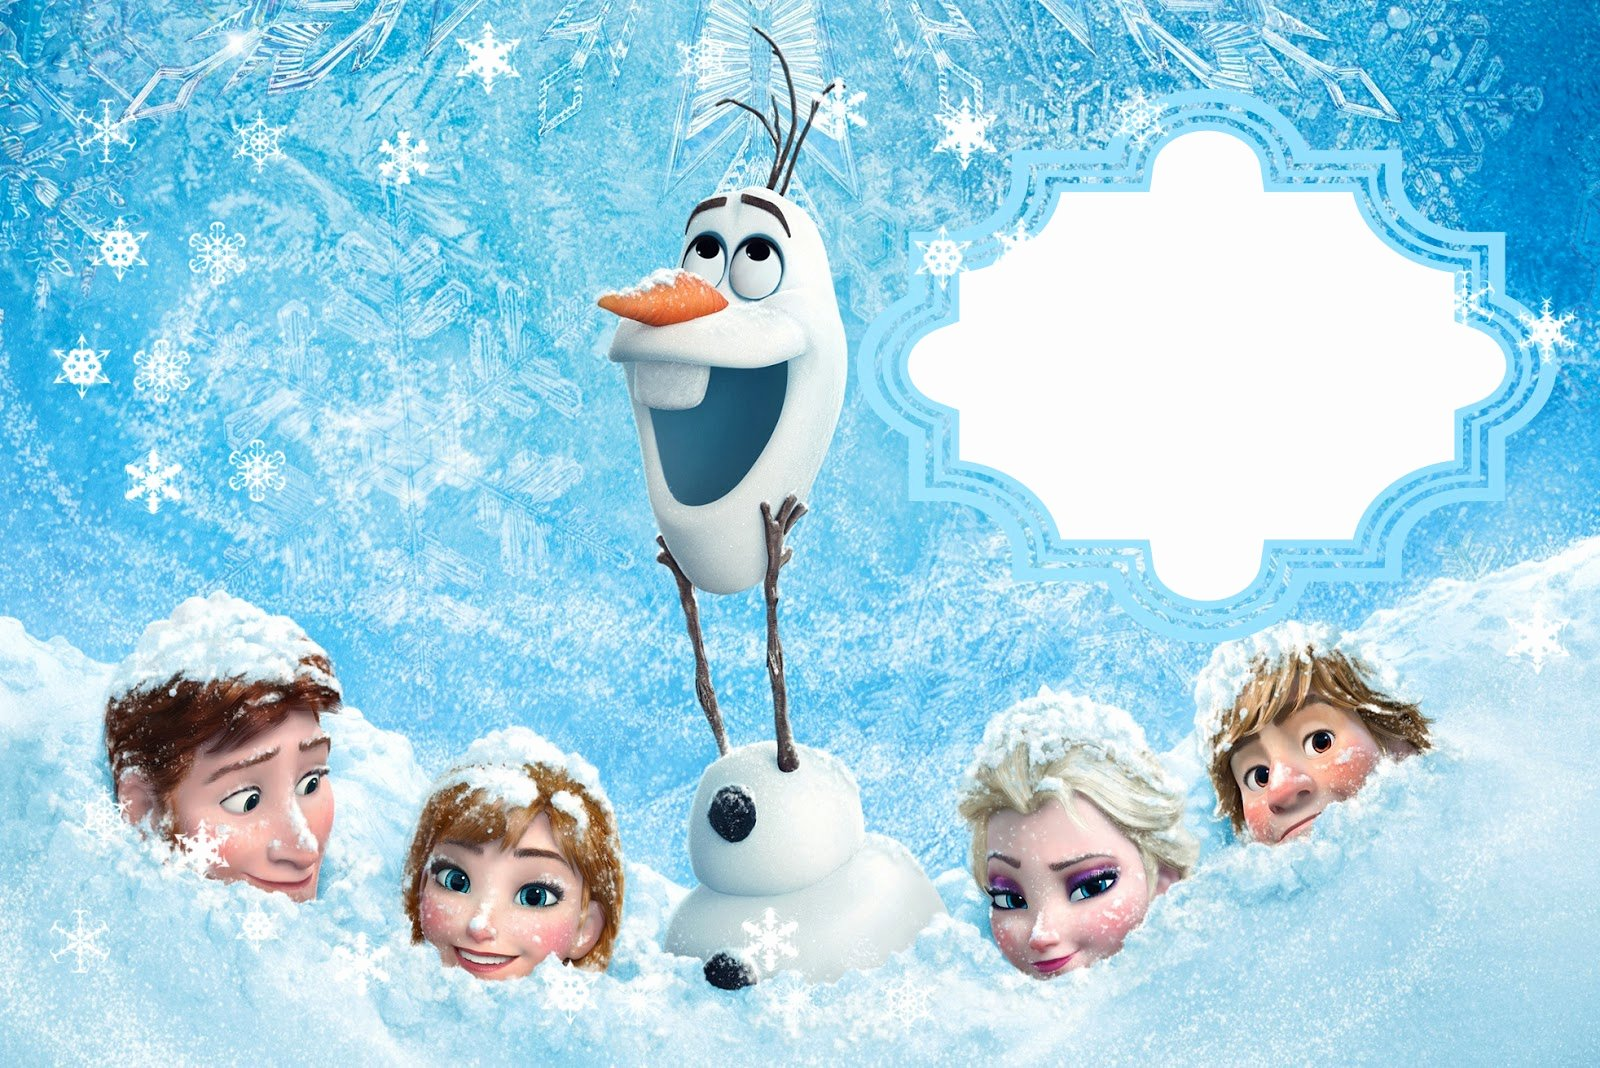 Frozen Birthday Cards Printable Fresh Frozen Free Printable Cards or Party Invitations Oh My